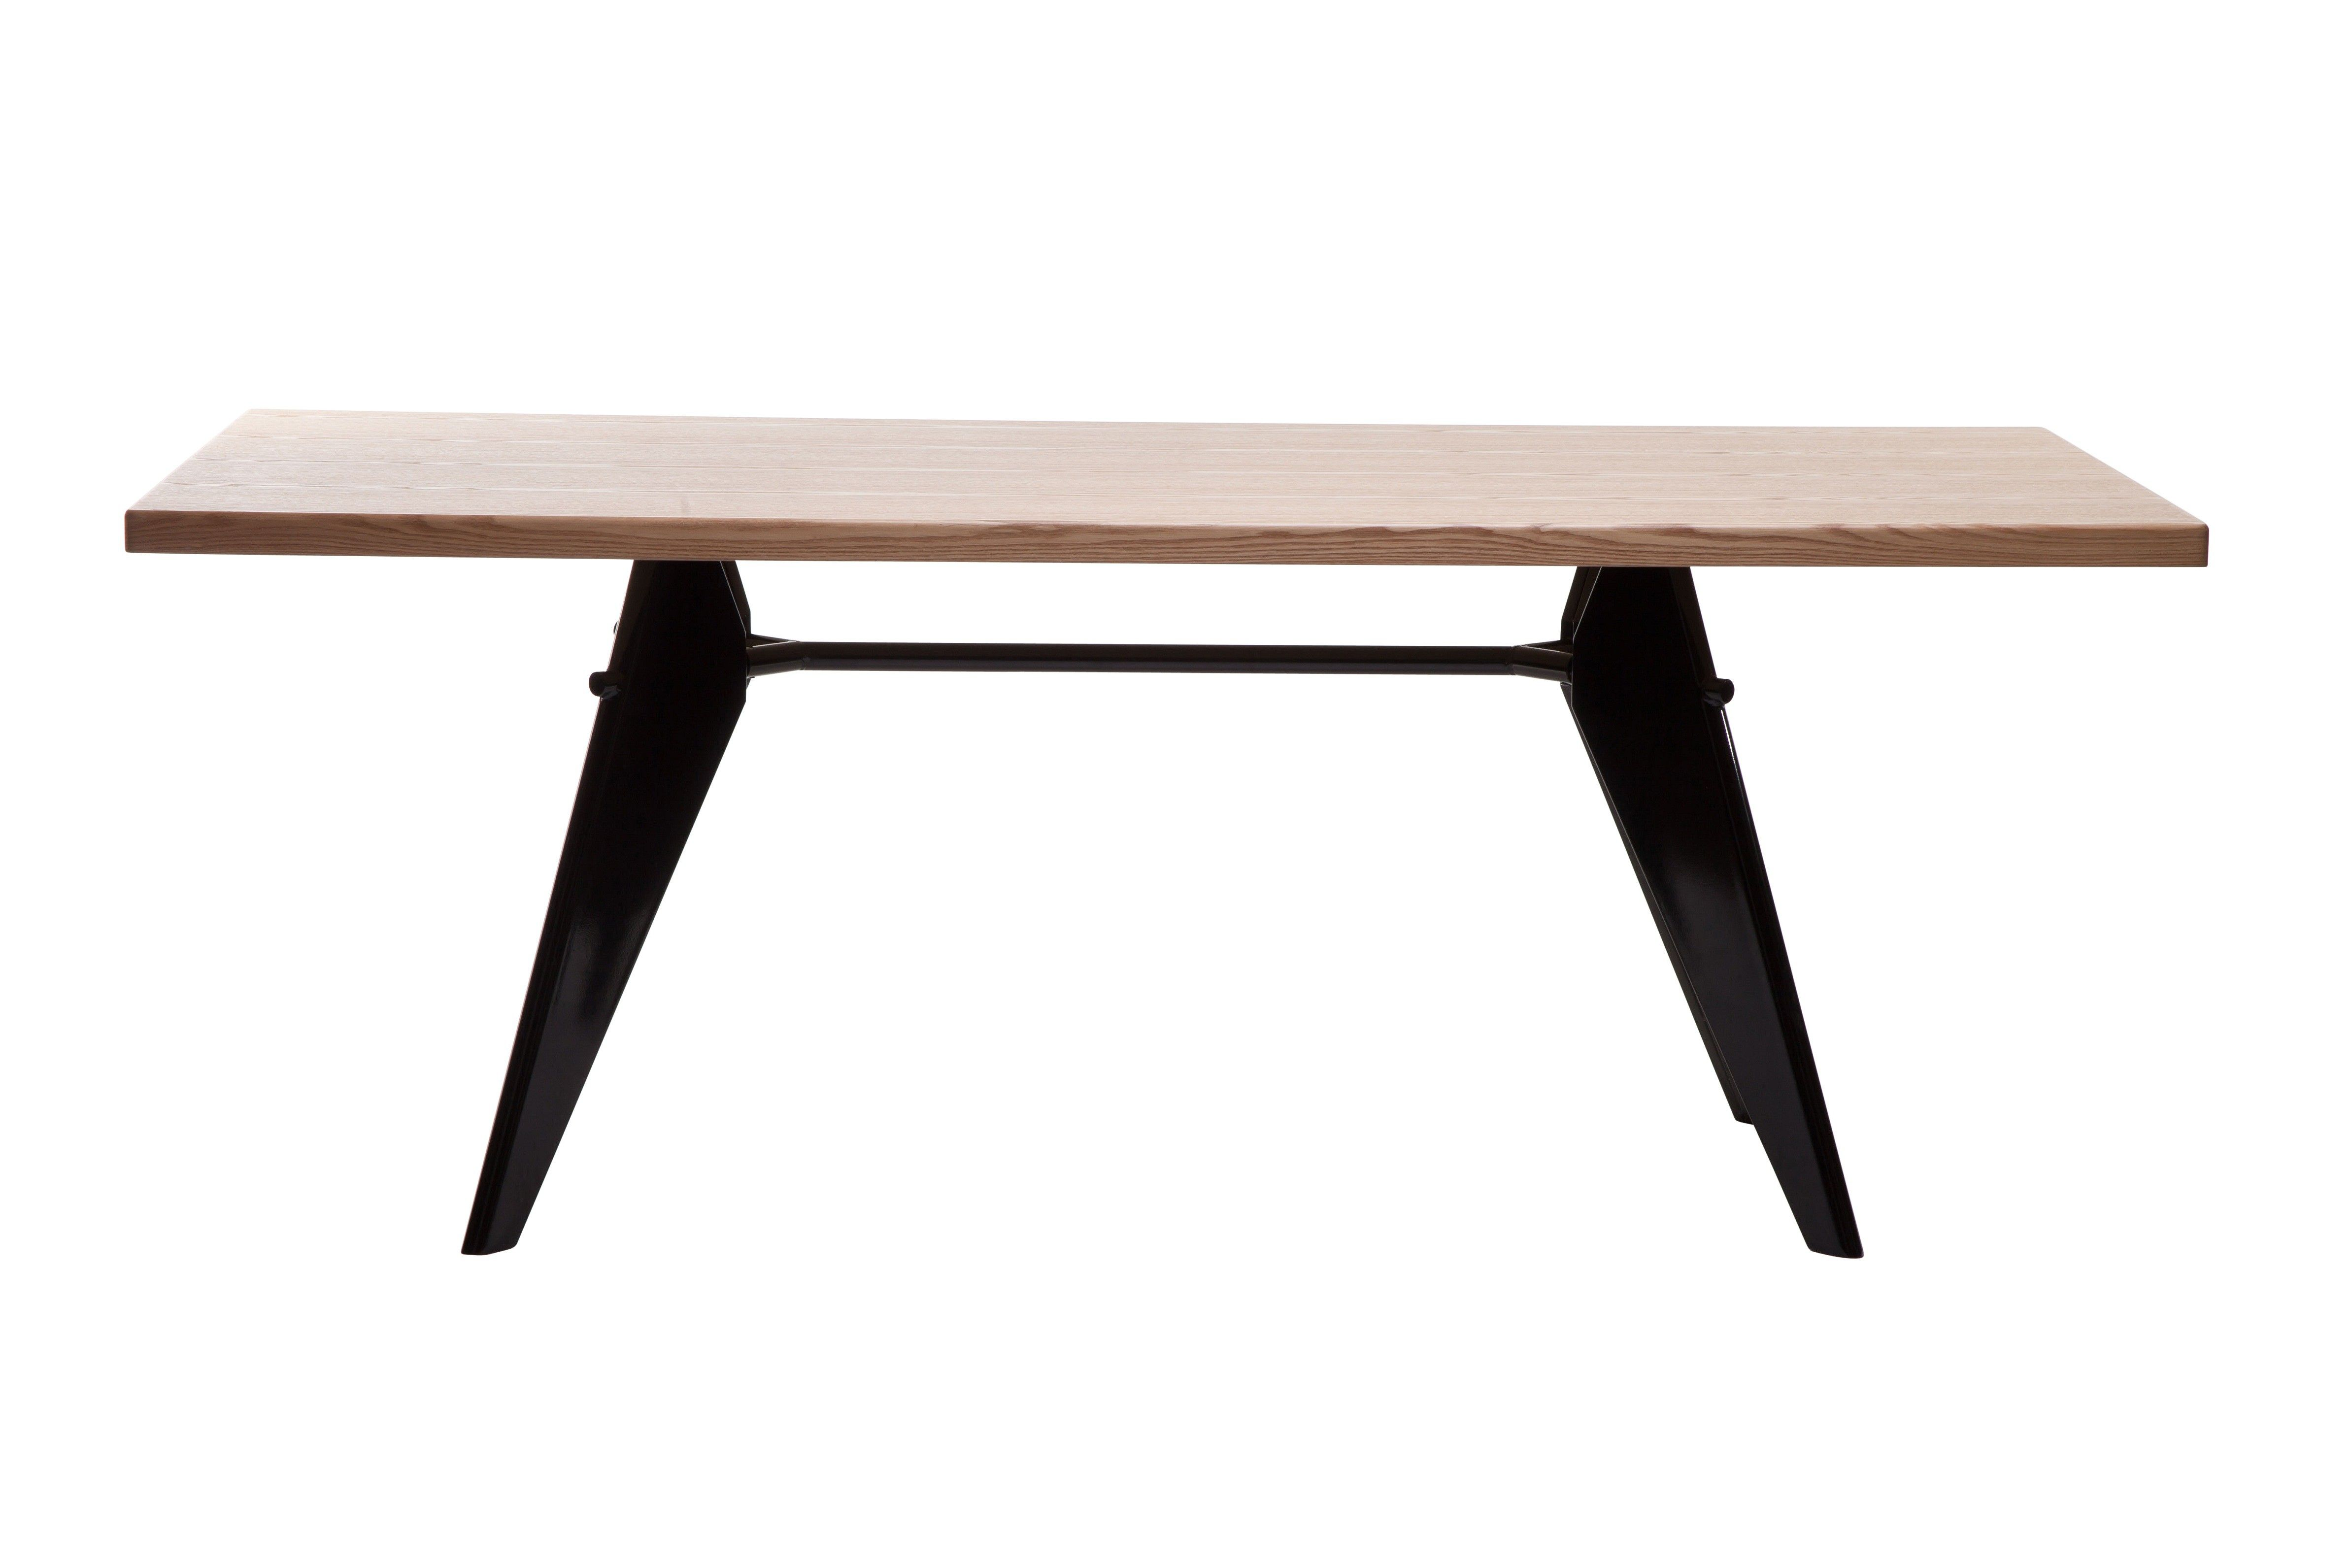 Furniture 8 popular oblong dining tables dining table oval replica - Buy The Jean Prouve Em Dining Table Online From Replica Furniture This Replica Jean Prouve Em Rectangle Dining Table Is Constructed From An Oak Veneer